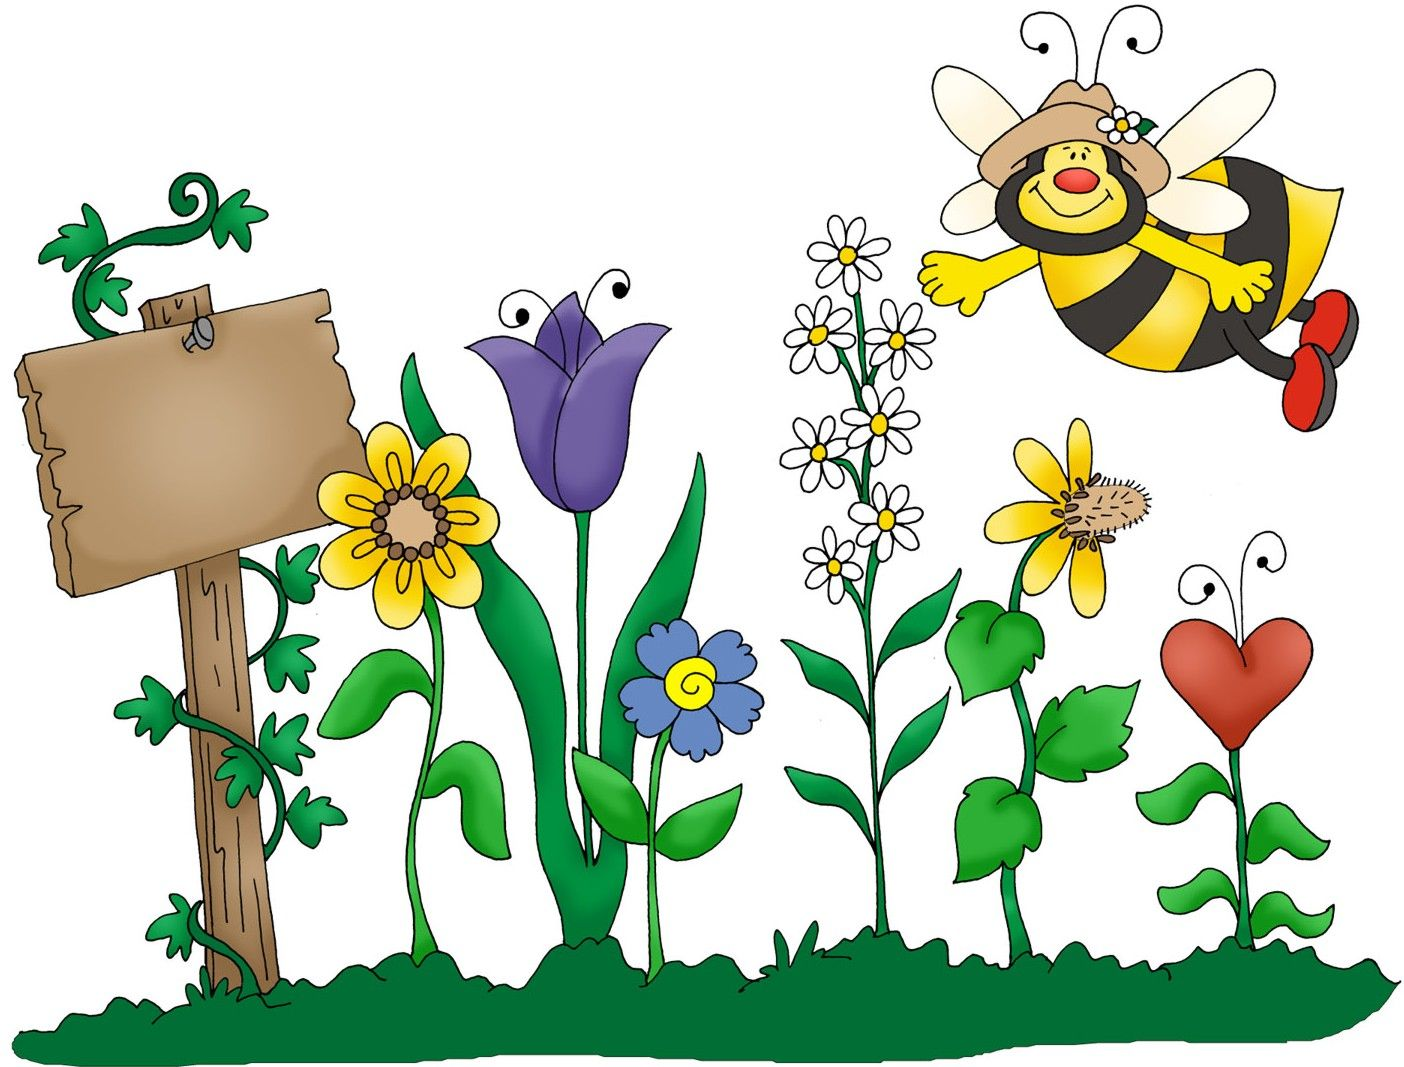 gardening clipart free clipart images clipartix garden club rh pinterest com free clipart photo sunflower free clipart photographs